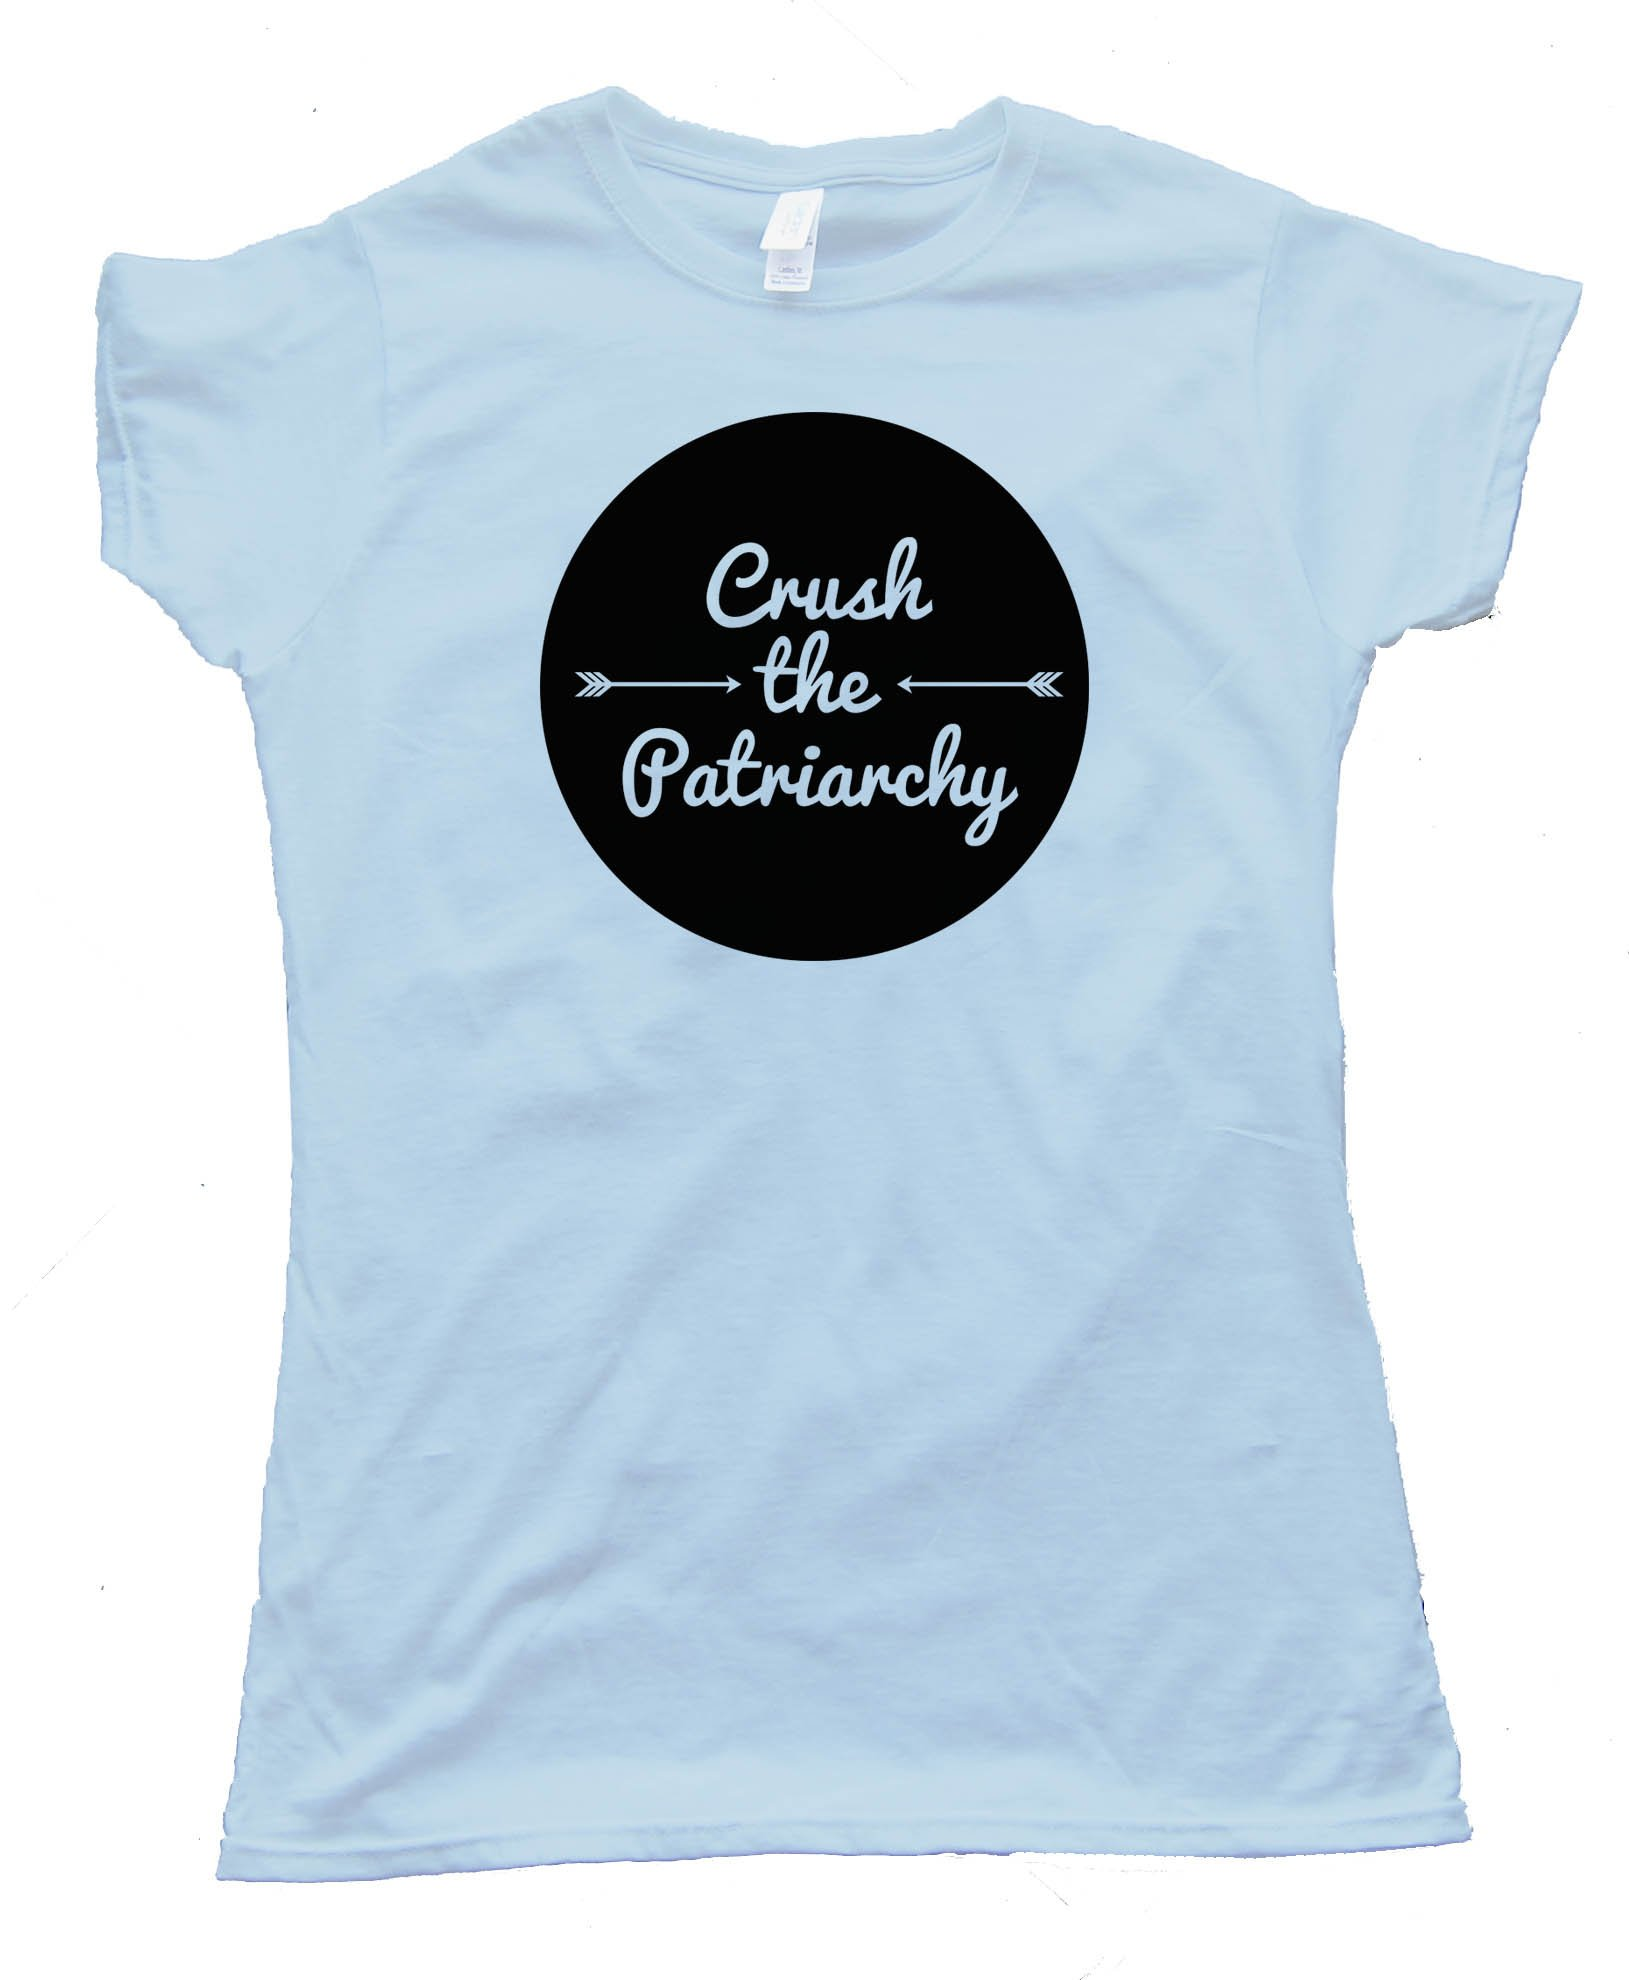 Womens Crush The Patriarchy - Tee Shirt